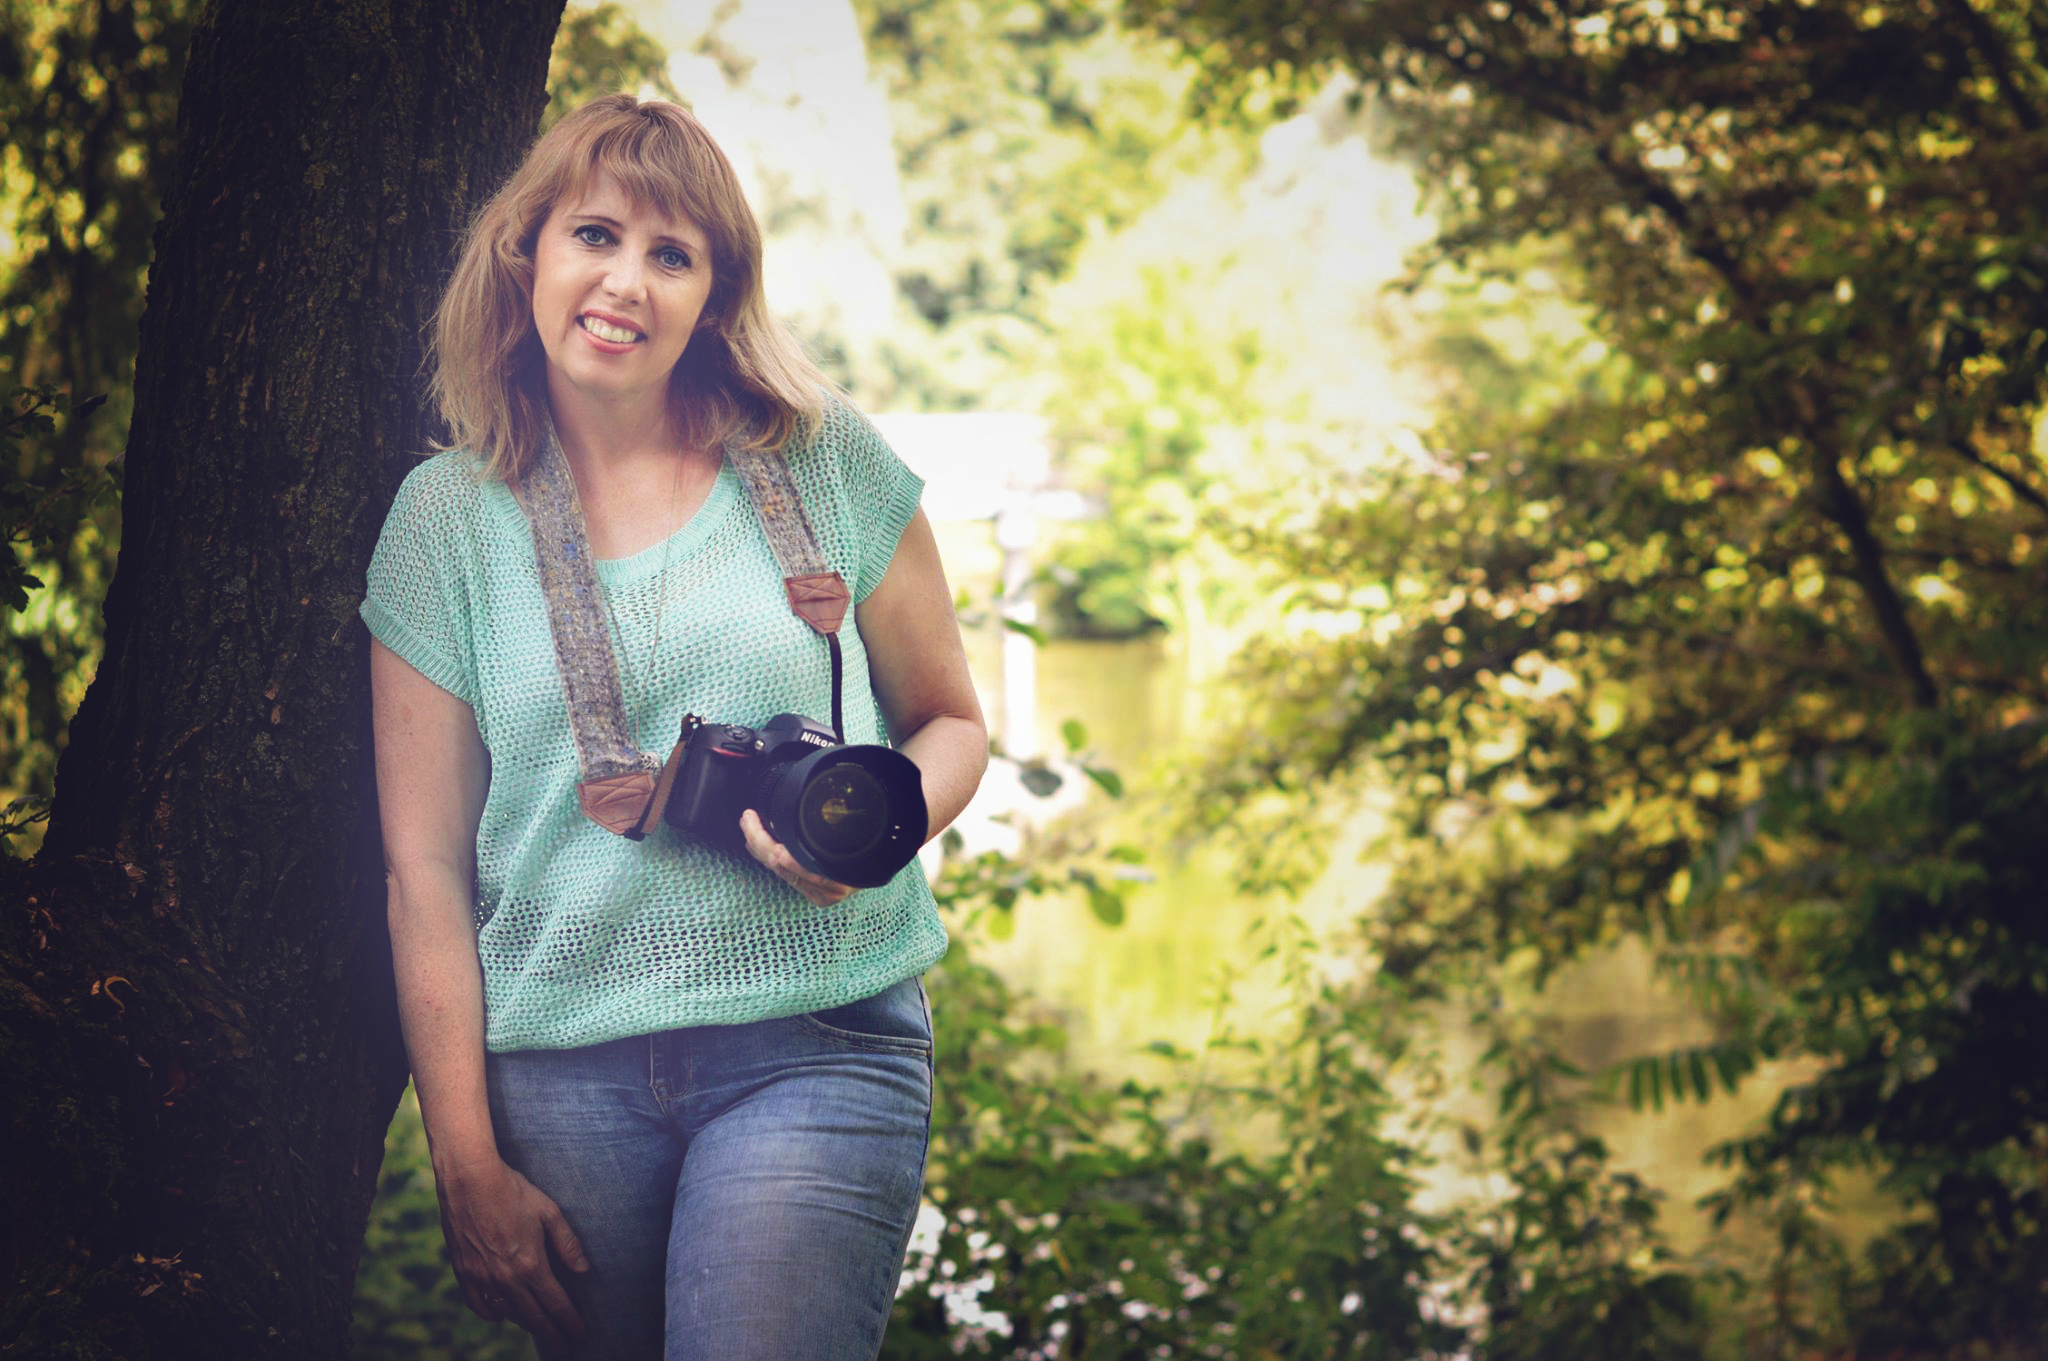 Fotograaf In The Picture: Sanne Smits Fotografie